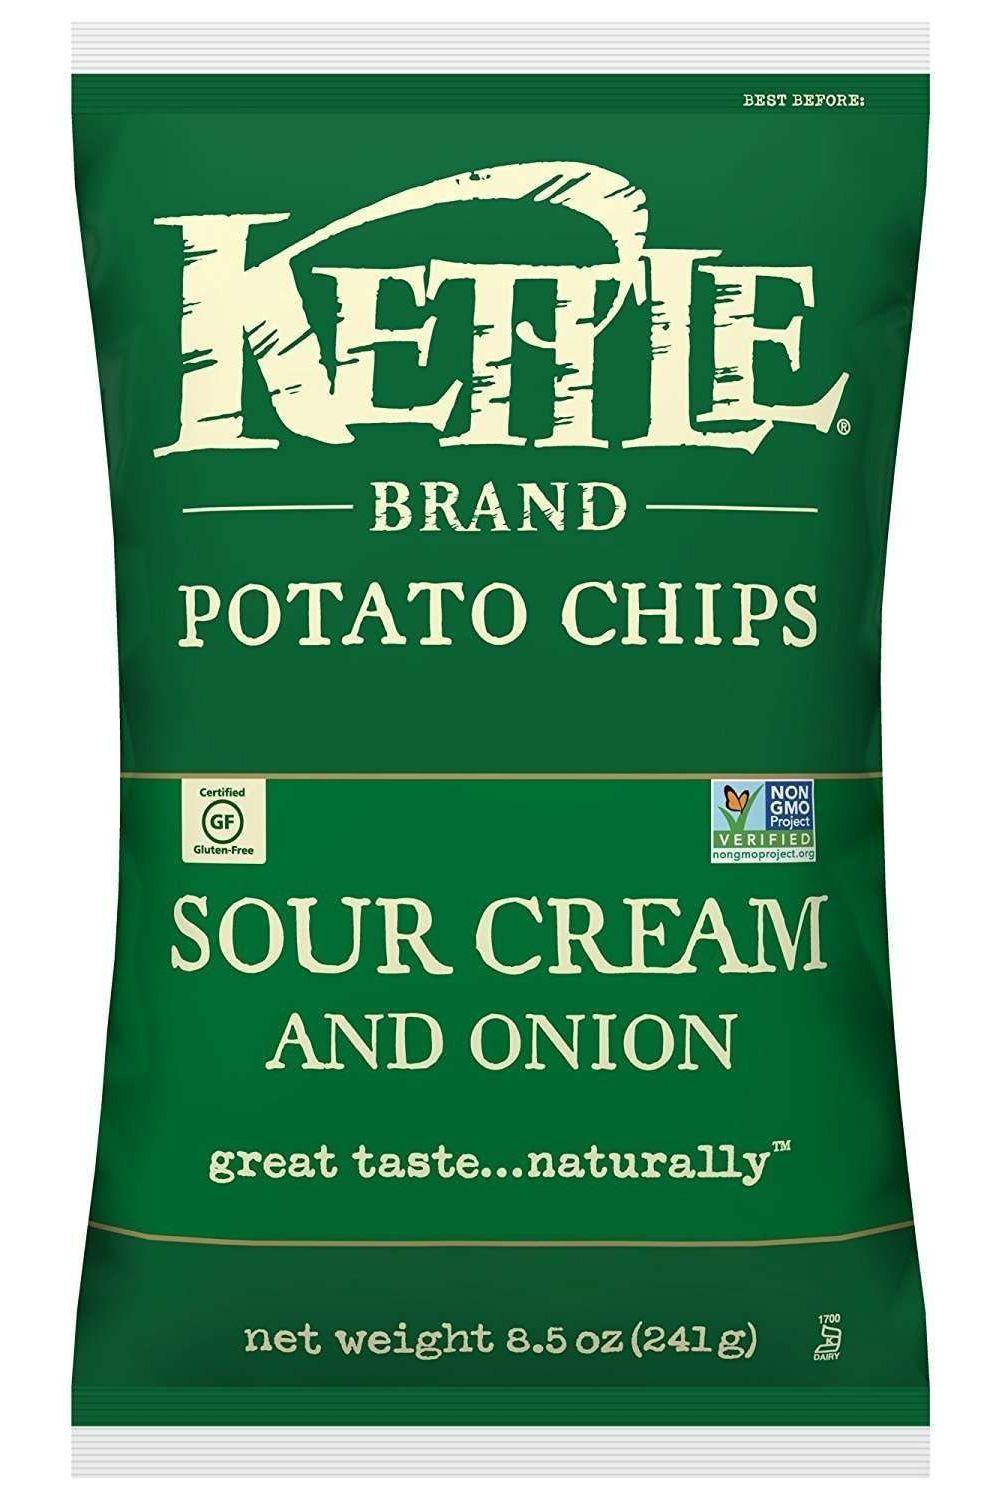 kettle brand sour cream and onion potato chips